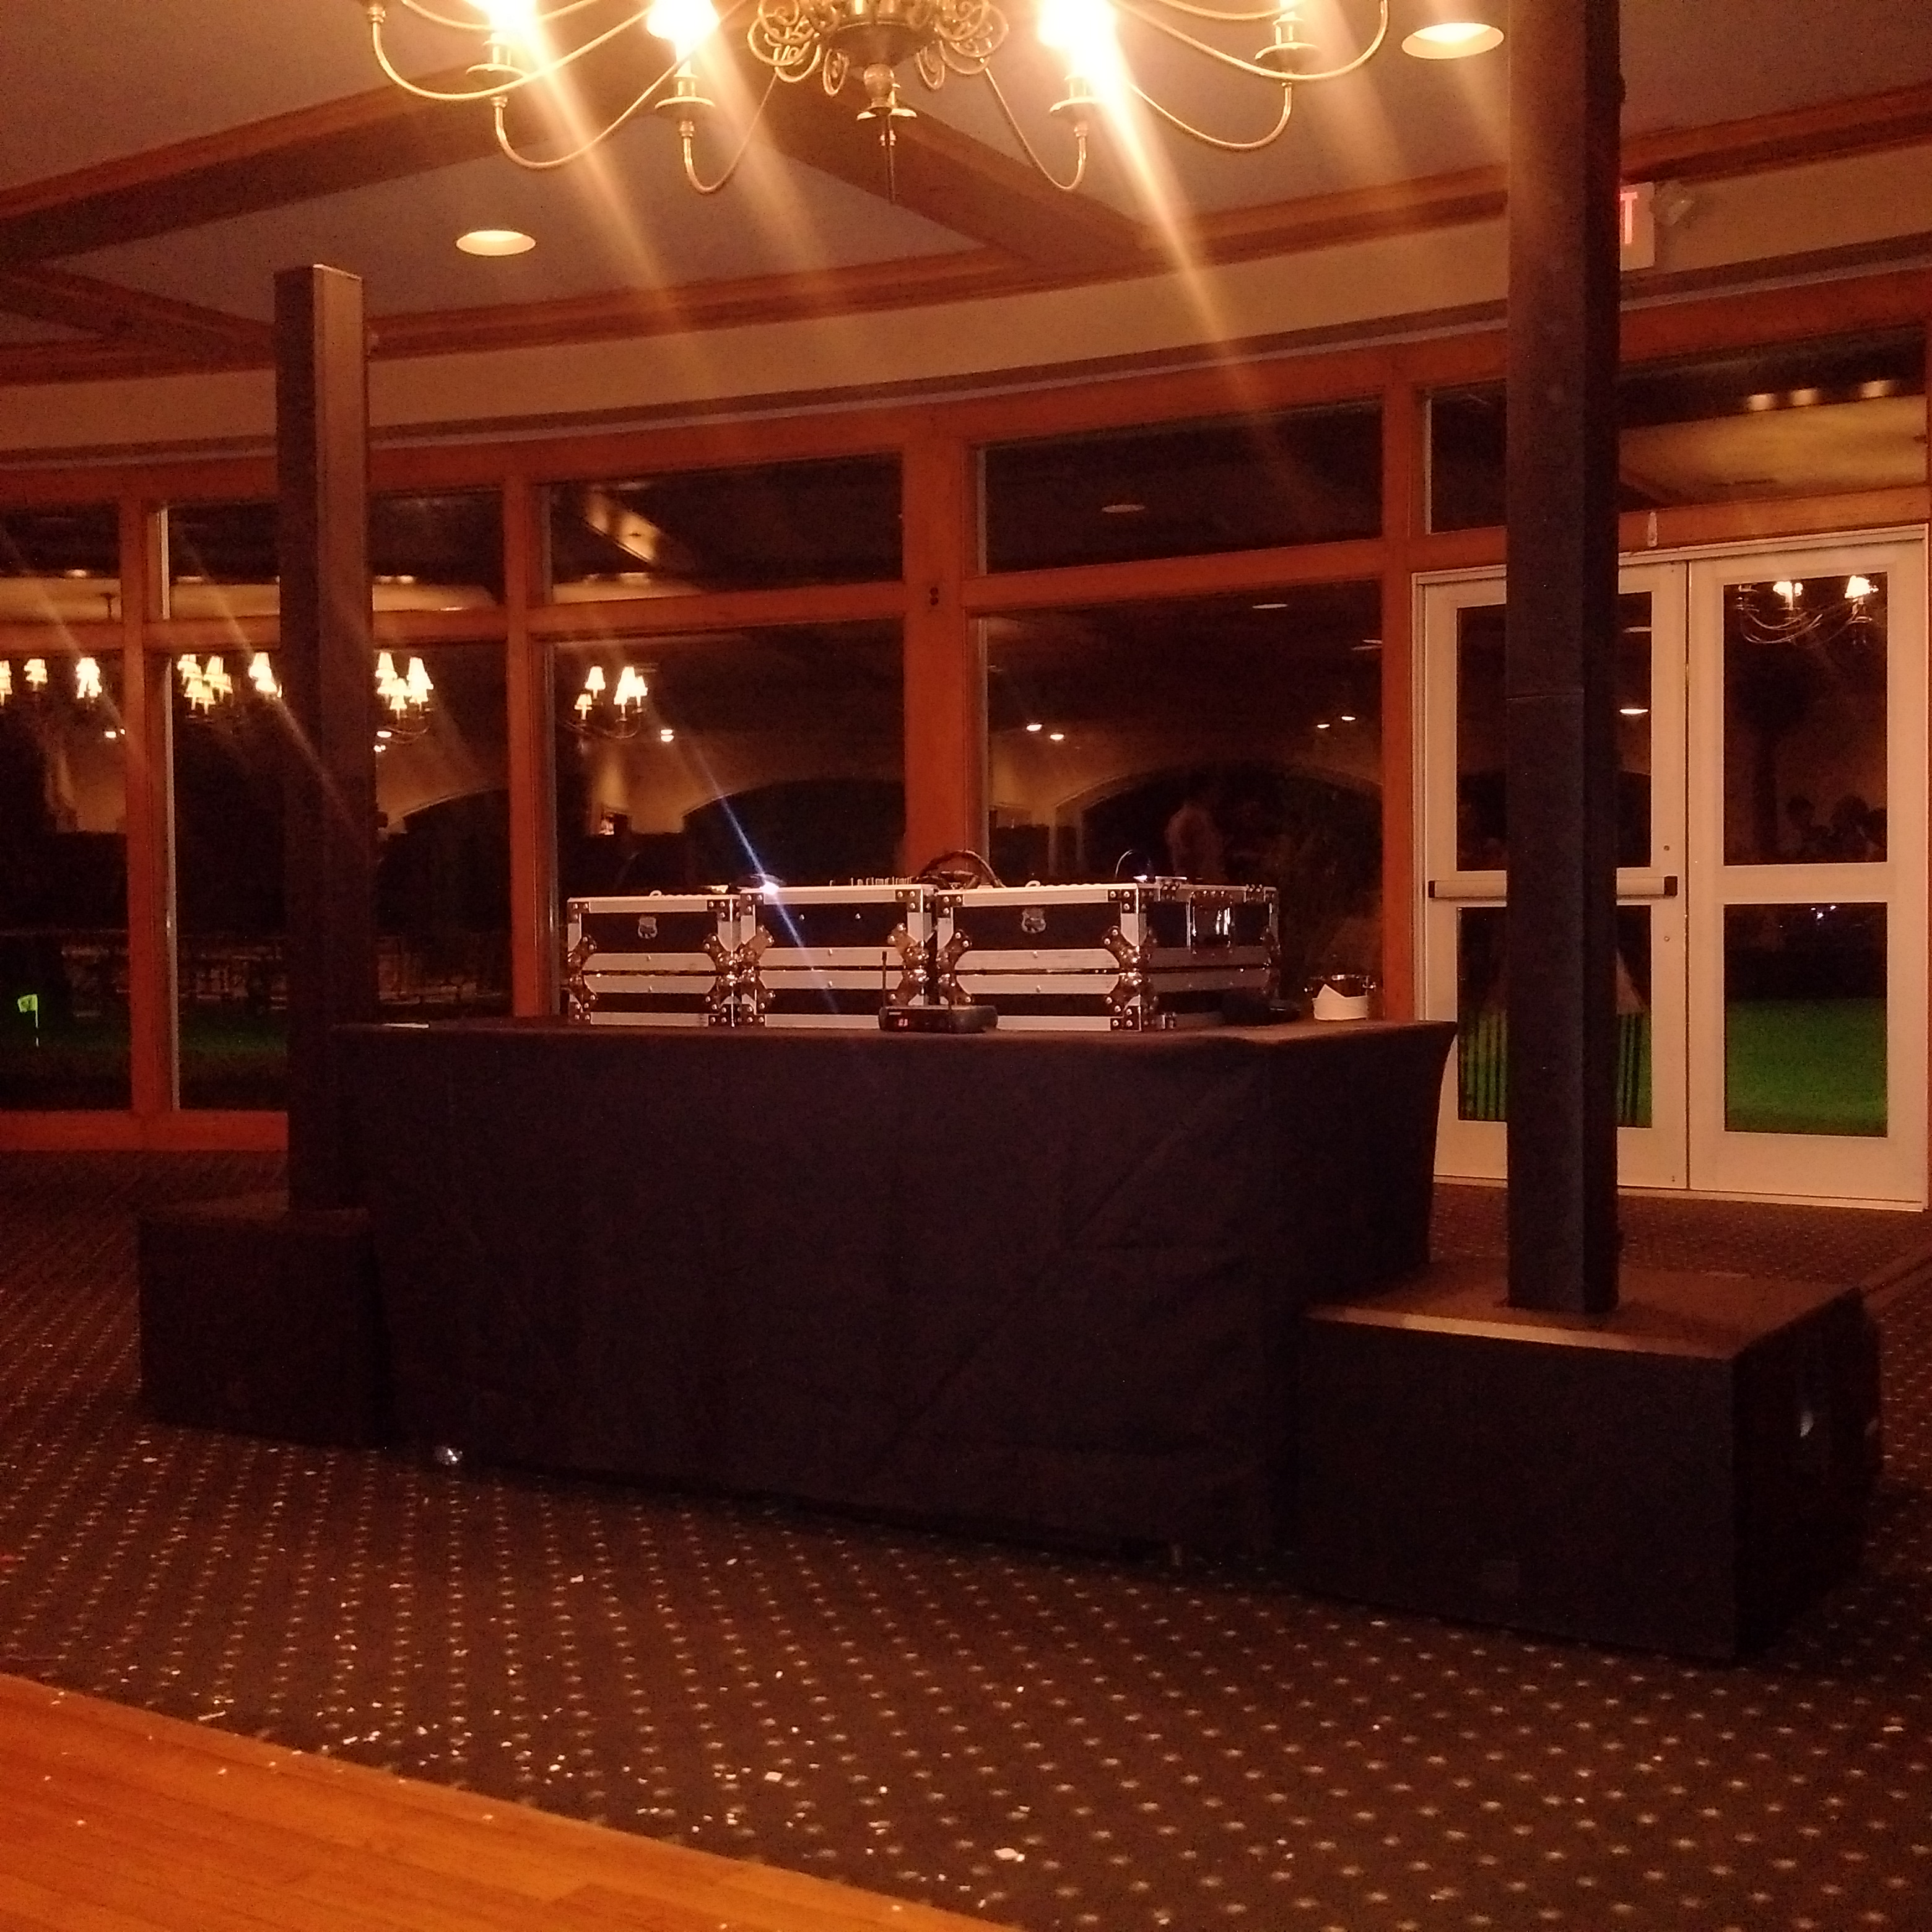 LD Systems MAUI44 speaker set up